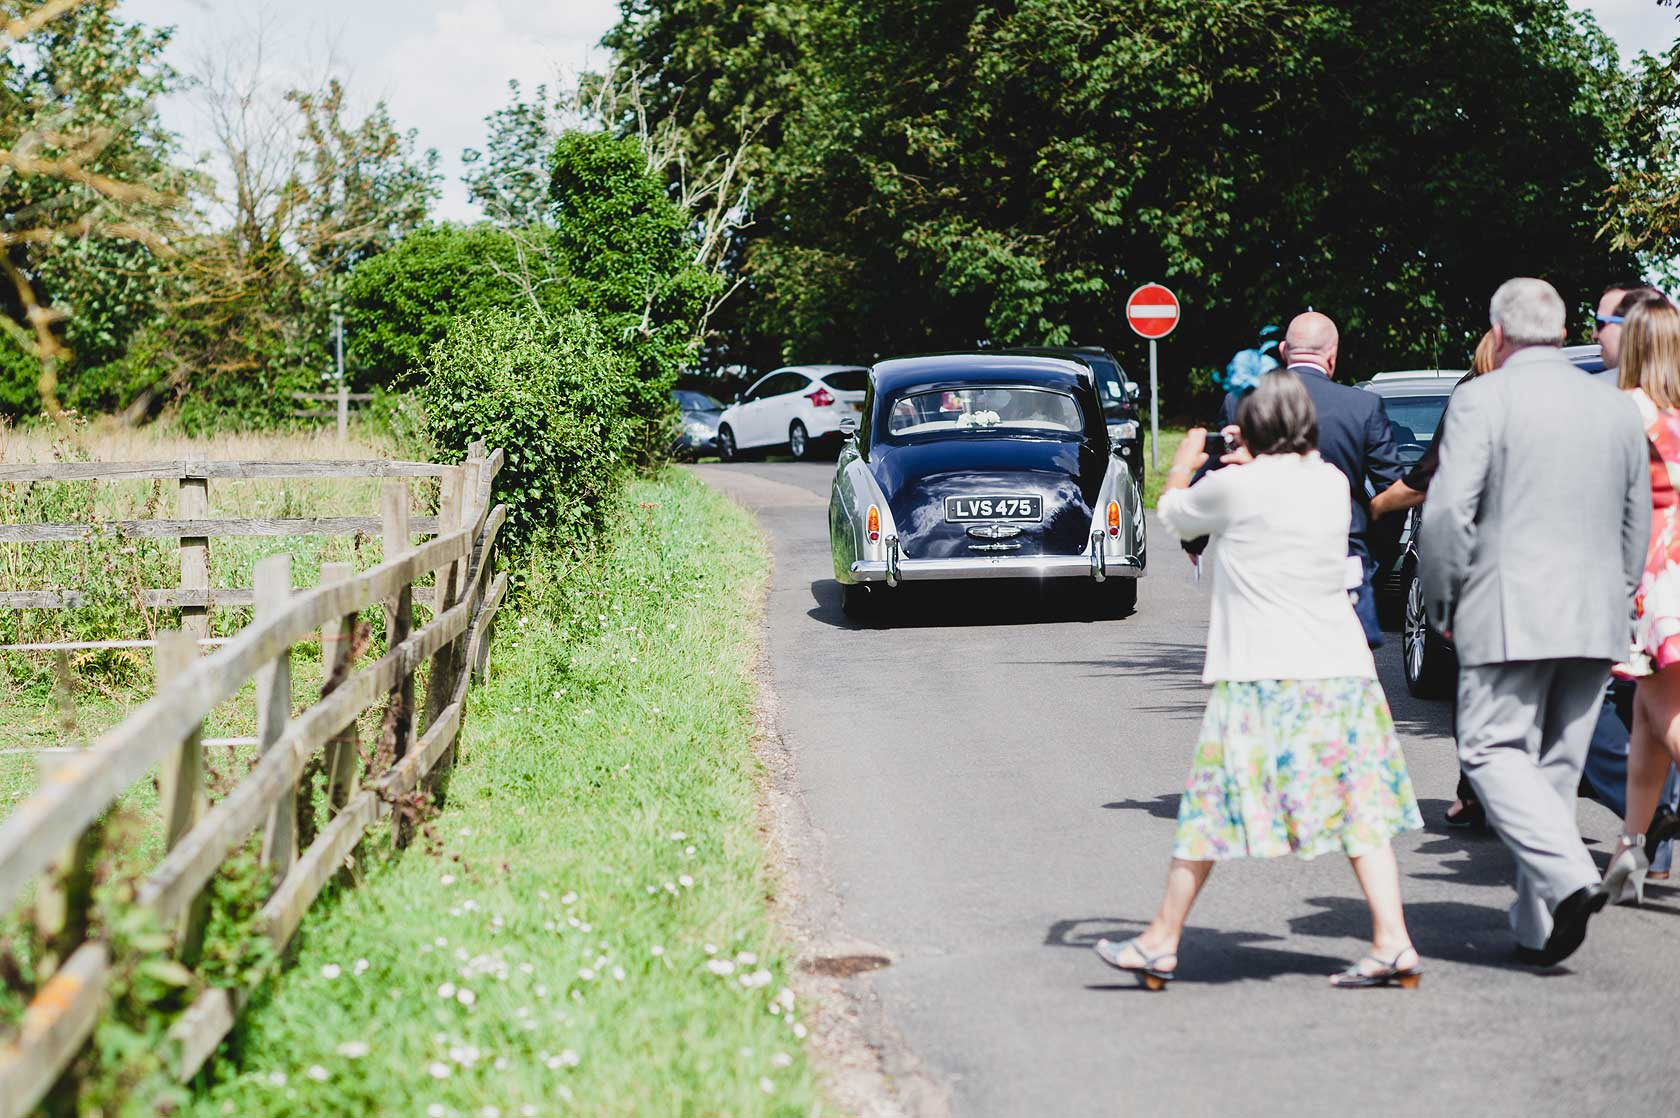 Notley Abbey Wedding in Thame